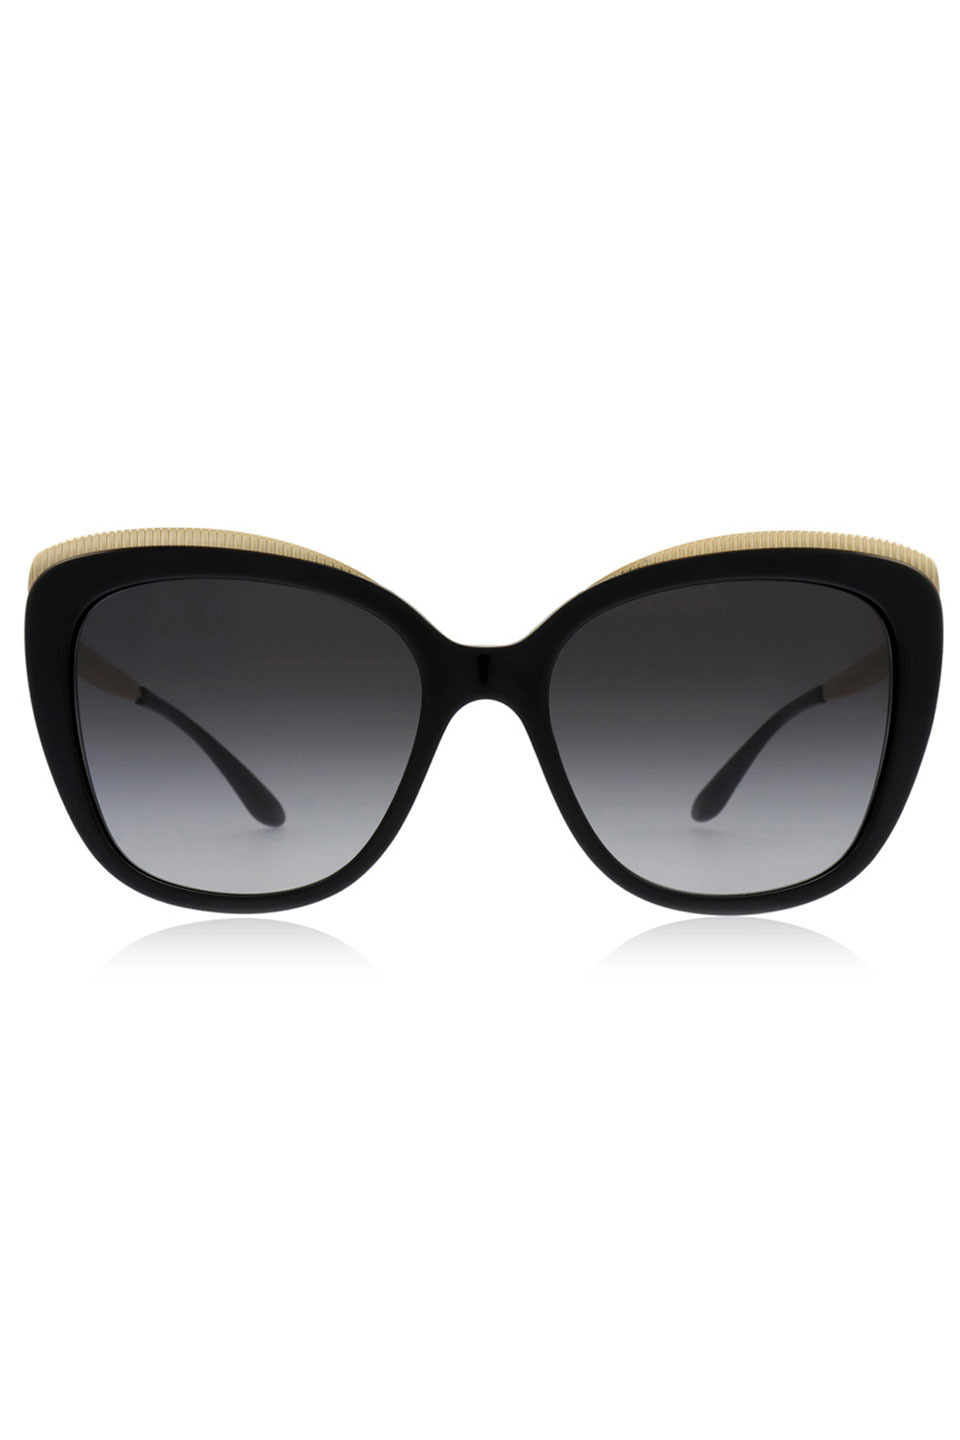 Ladies Sunglasses in Black and Gold and Gray Gradient